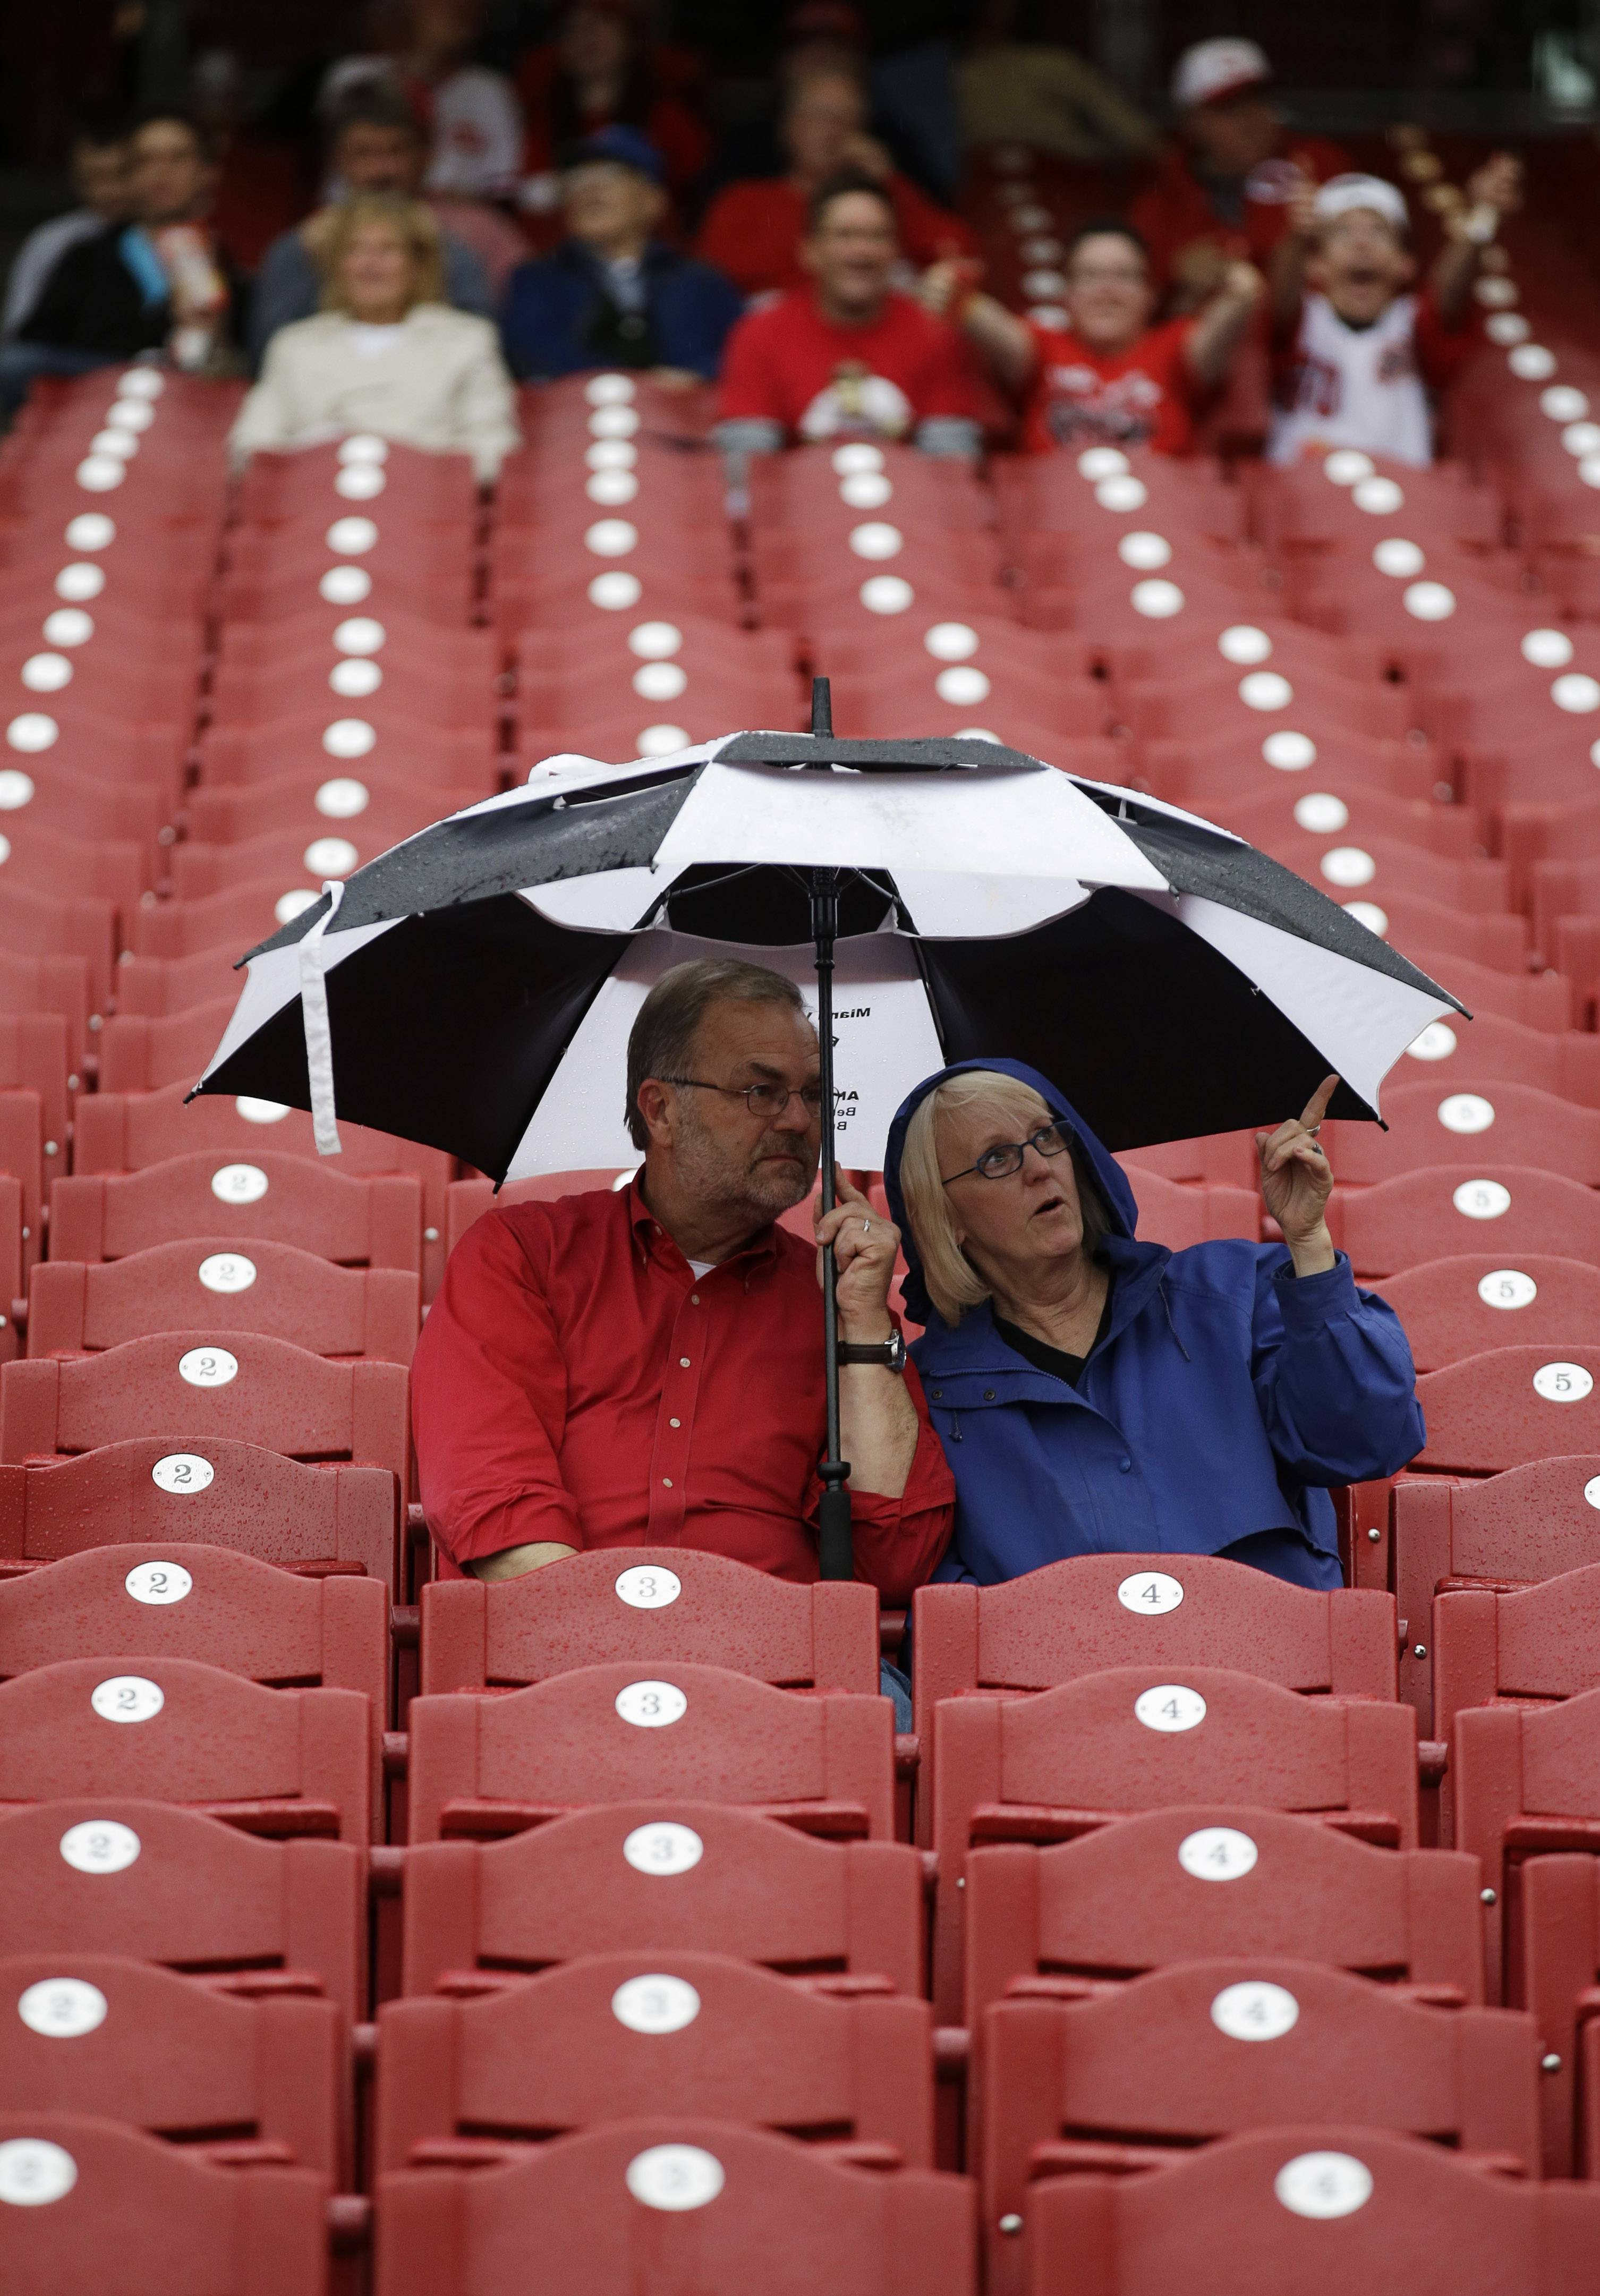 Fans sit in the stands before a baseball game between the Cincinnati Reds and the Chicago Cubs that was delayed by rain.